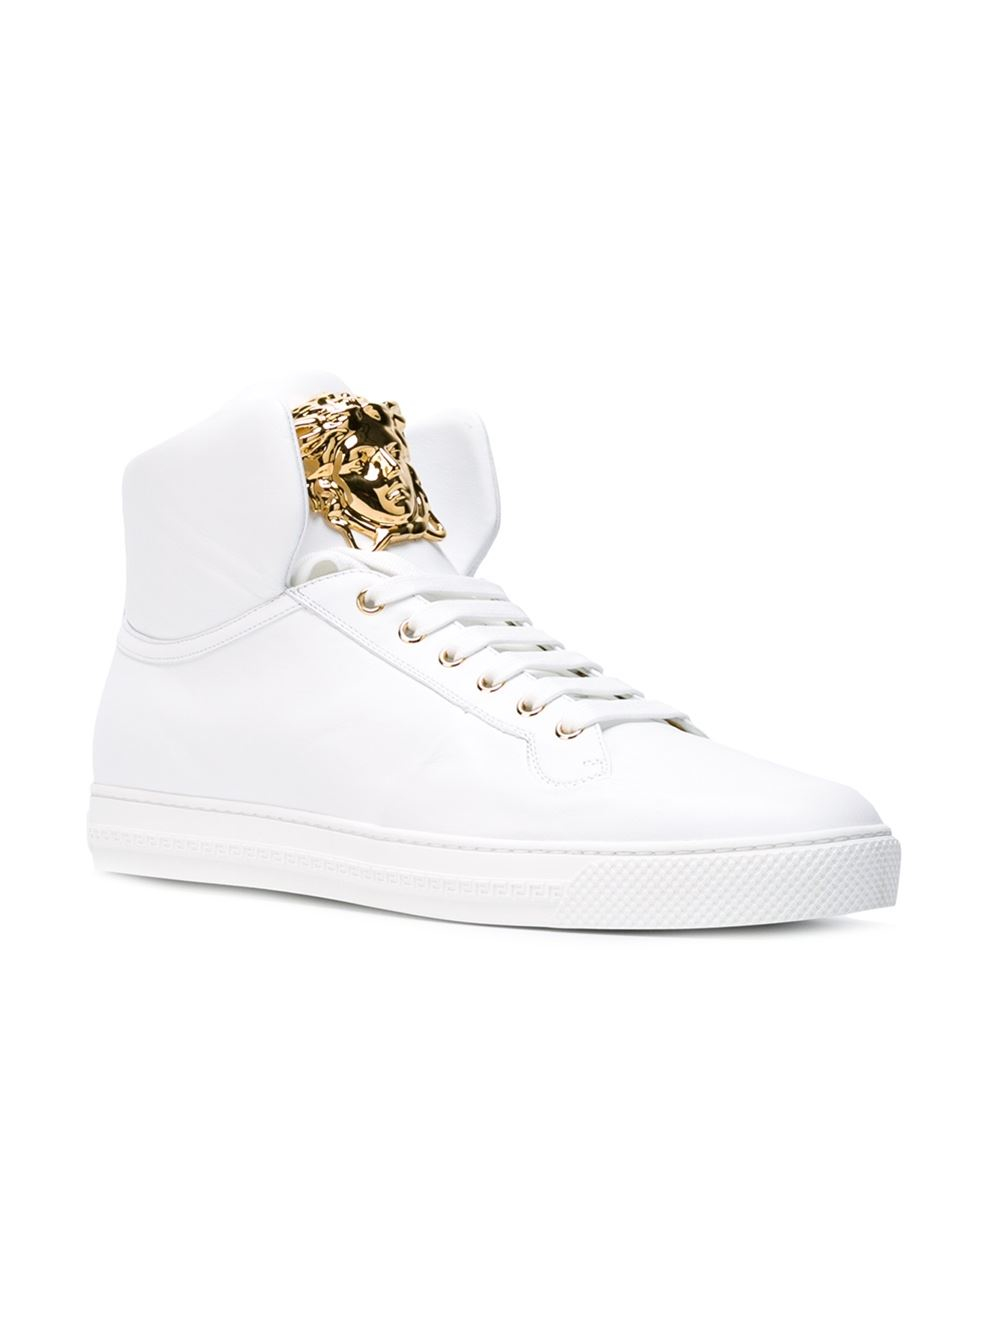 White Leather High Top Shoes